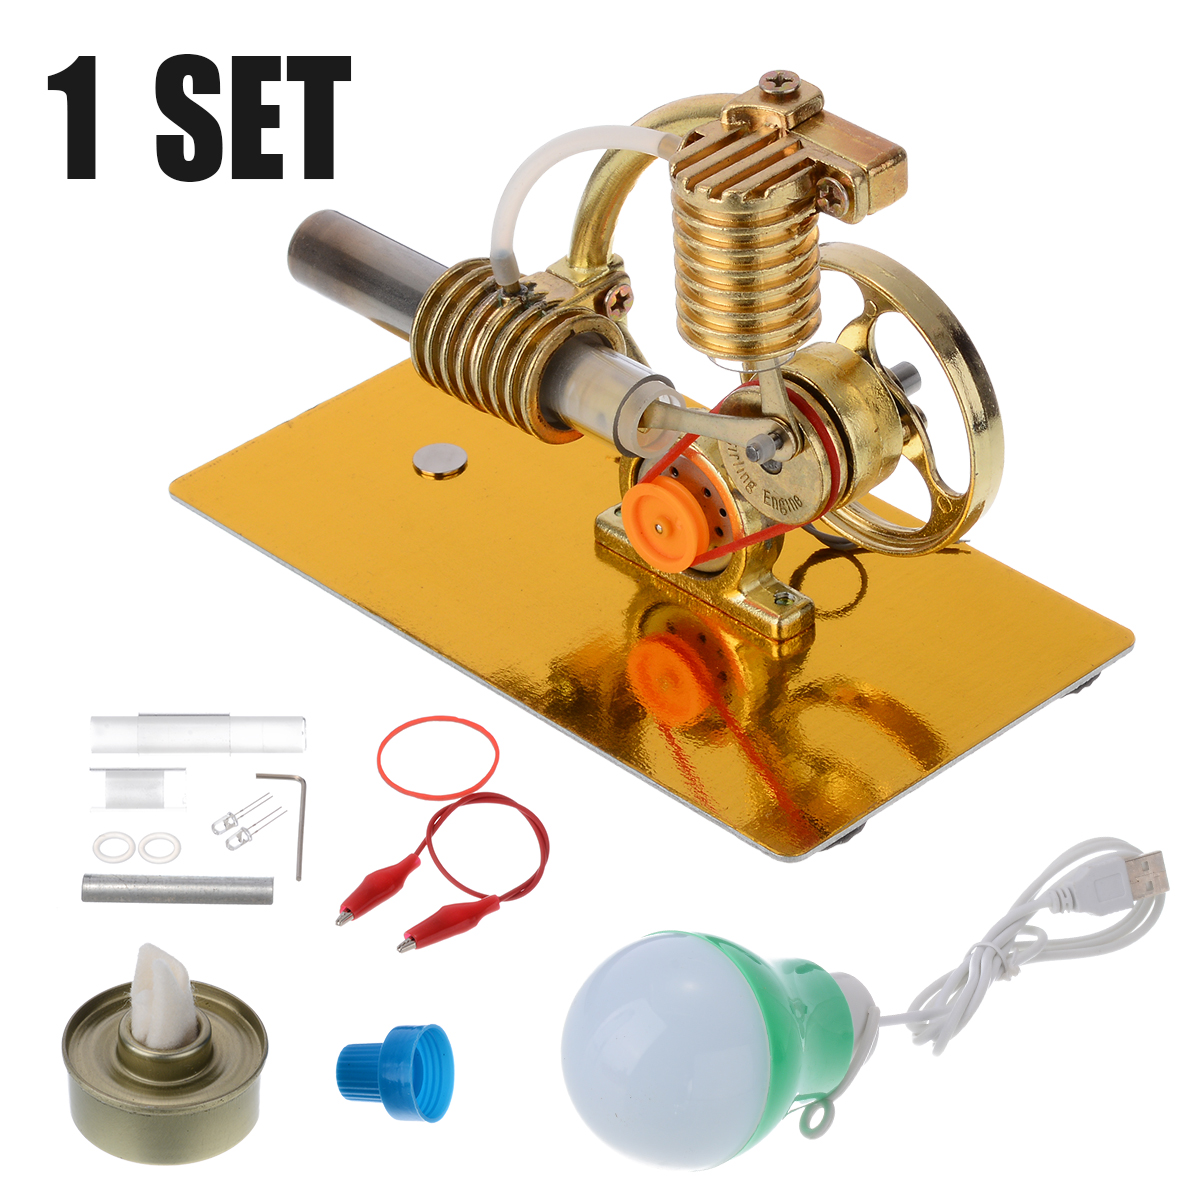 Model Building Kits Air Stirling Engine Motor Steam Heat Model Kit DIY Educational Toy Education Kids Toy Science Experiment Kit